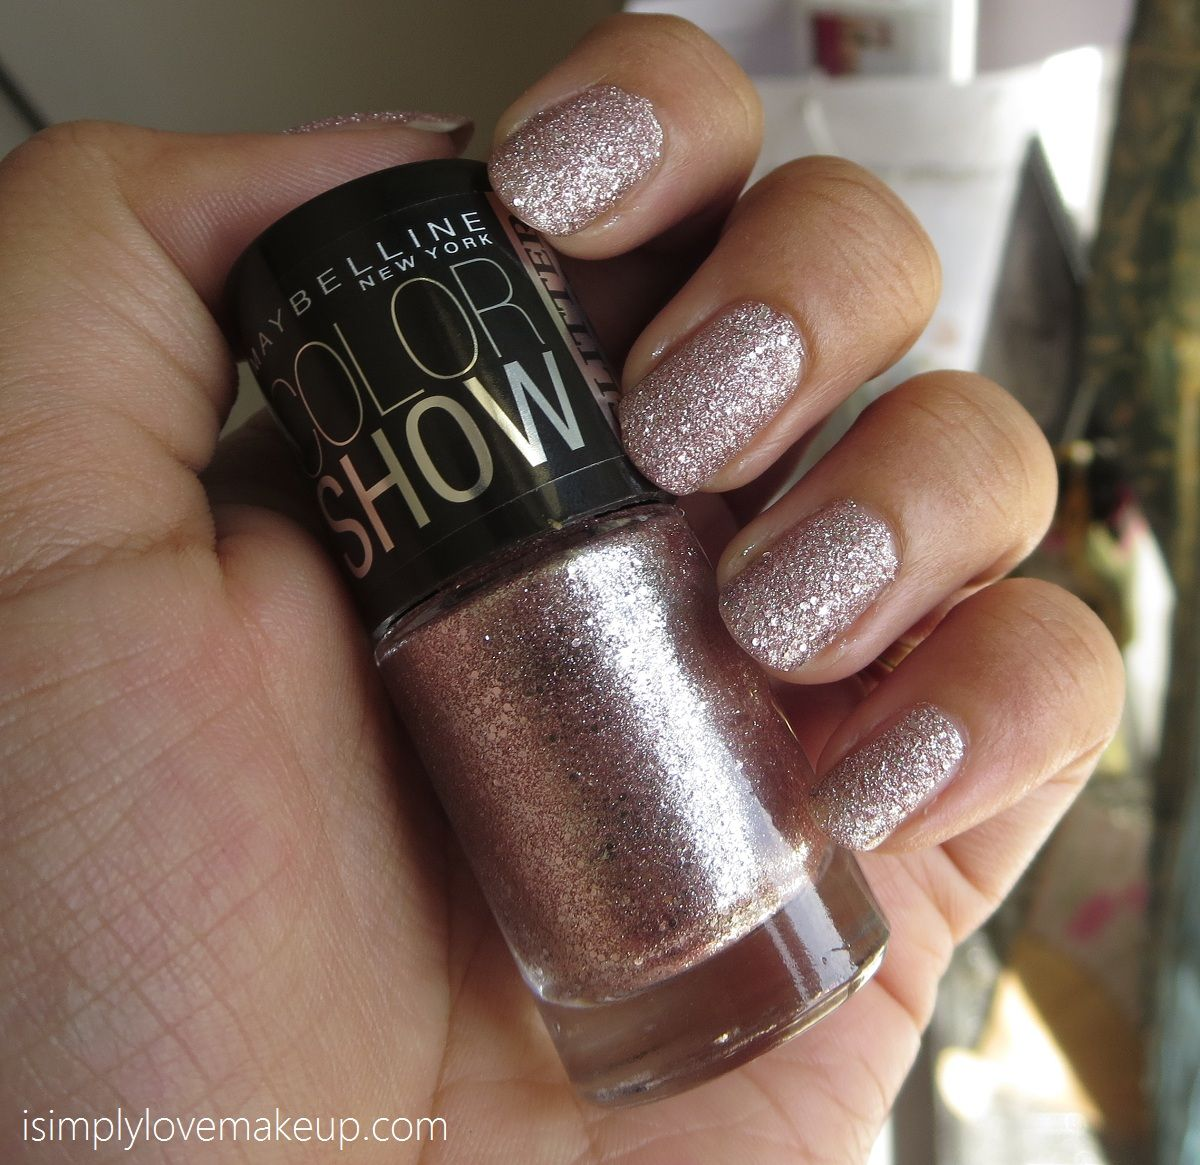 Maybelline ColorShow Glitter Mania Pink Champagne Nail Color | Nails ...